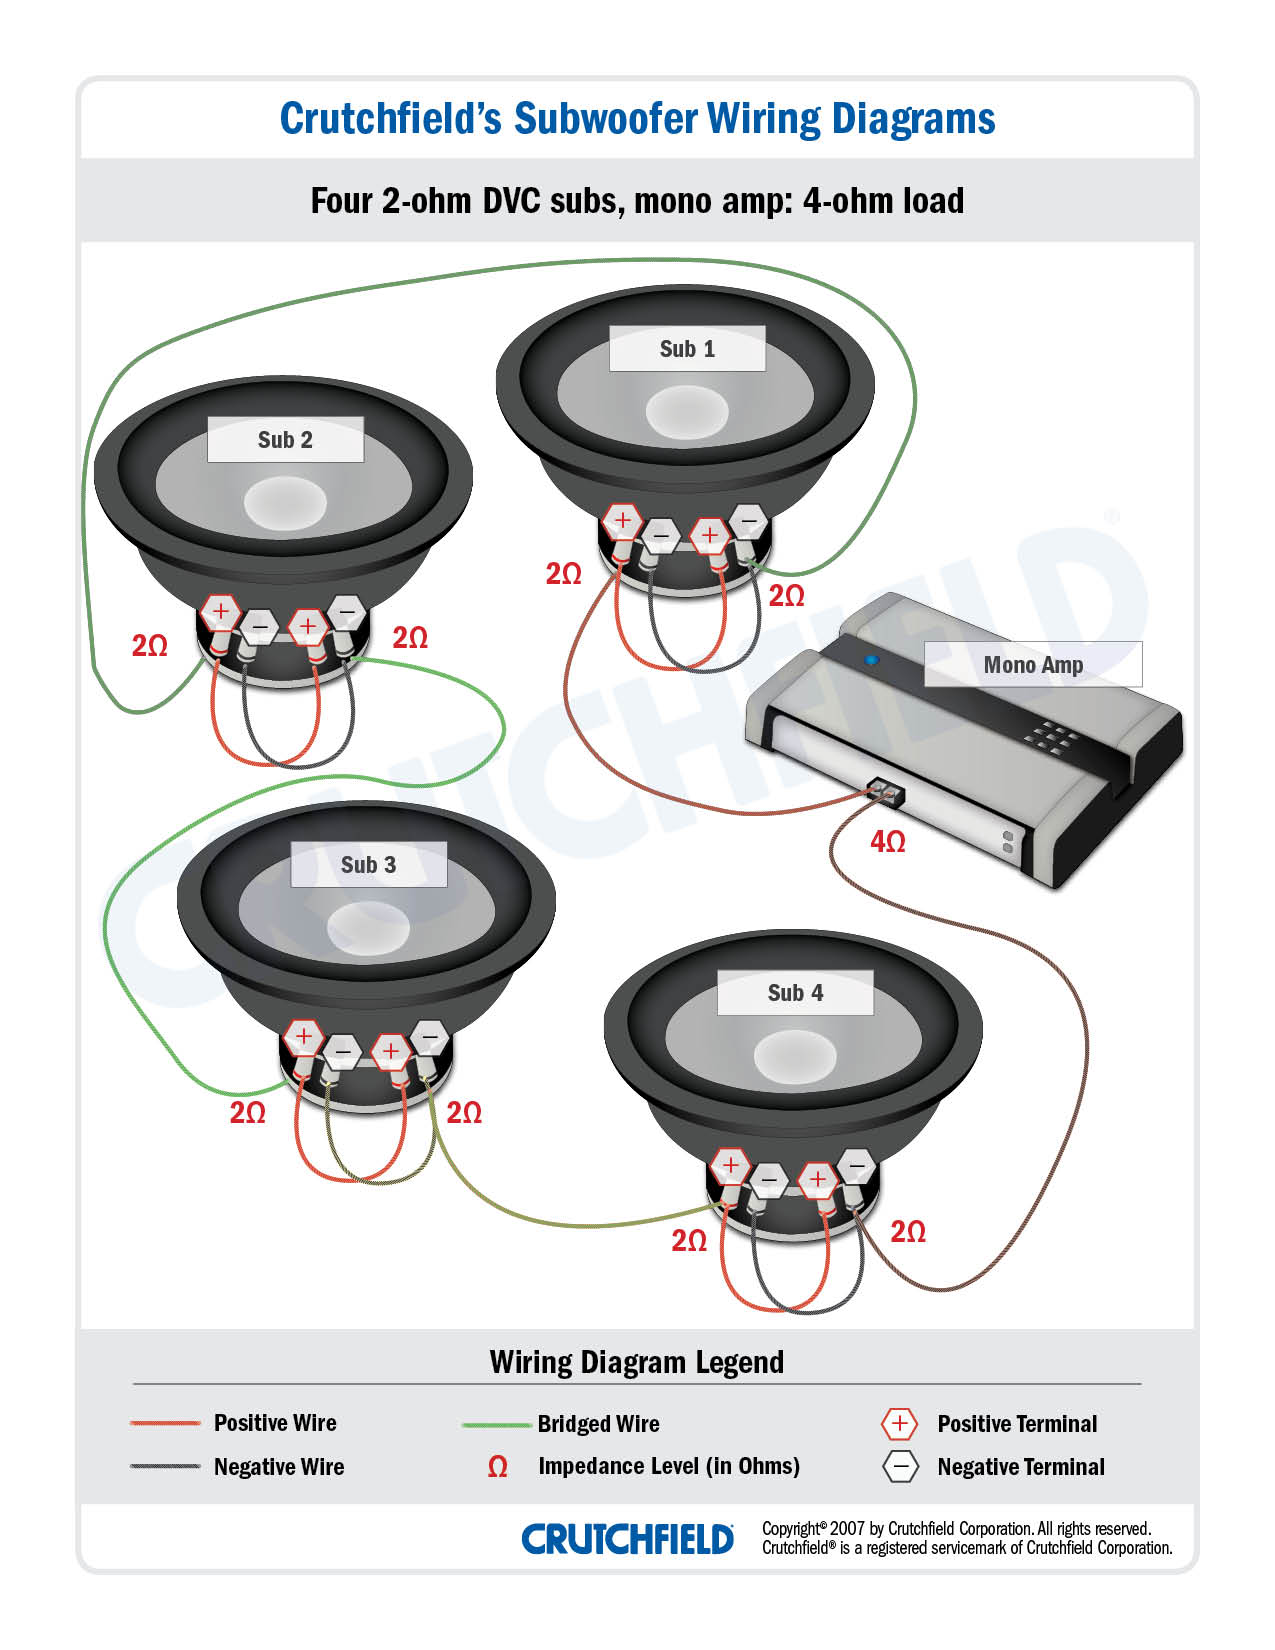 subwoofer wiring diagrams 4 dvc 2 ohm mono